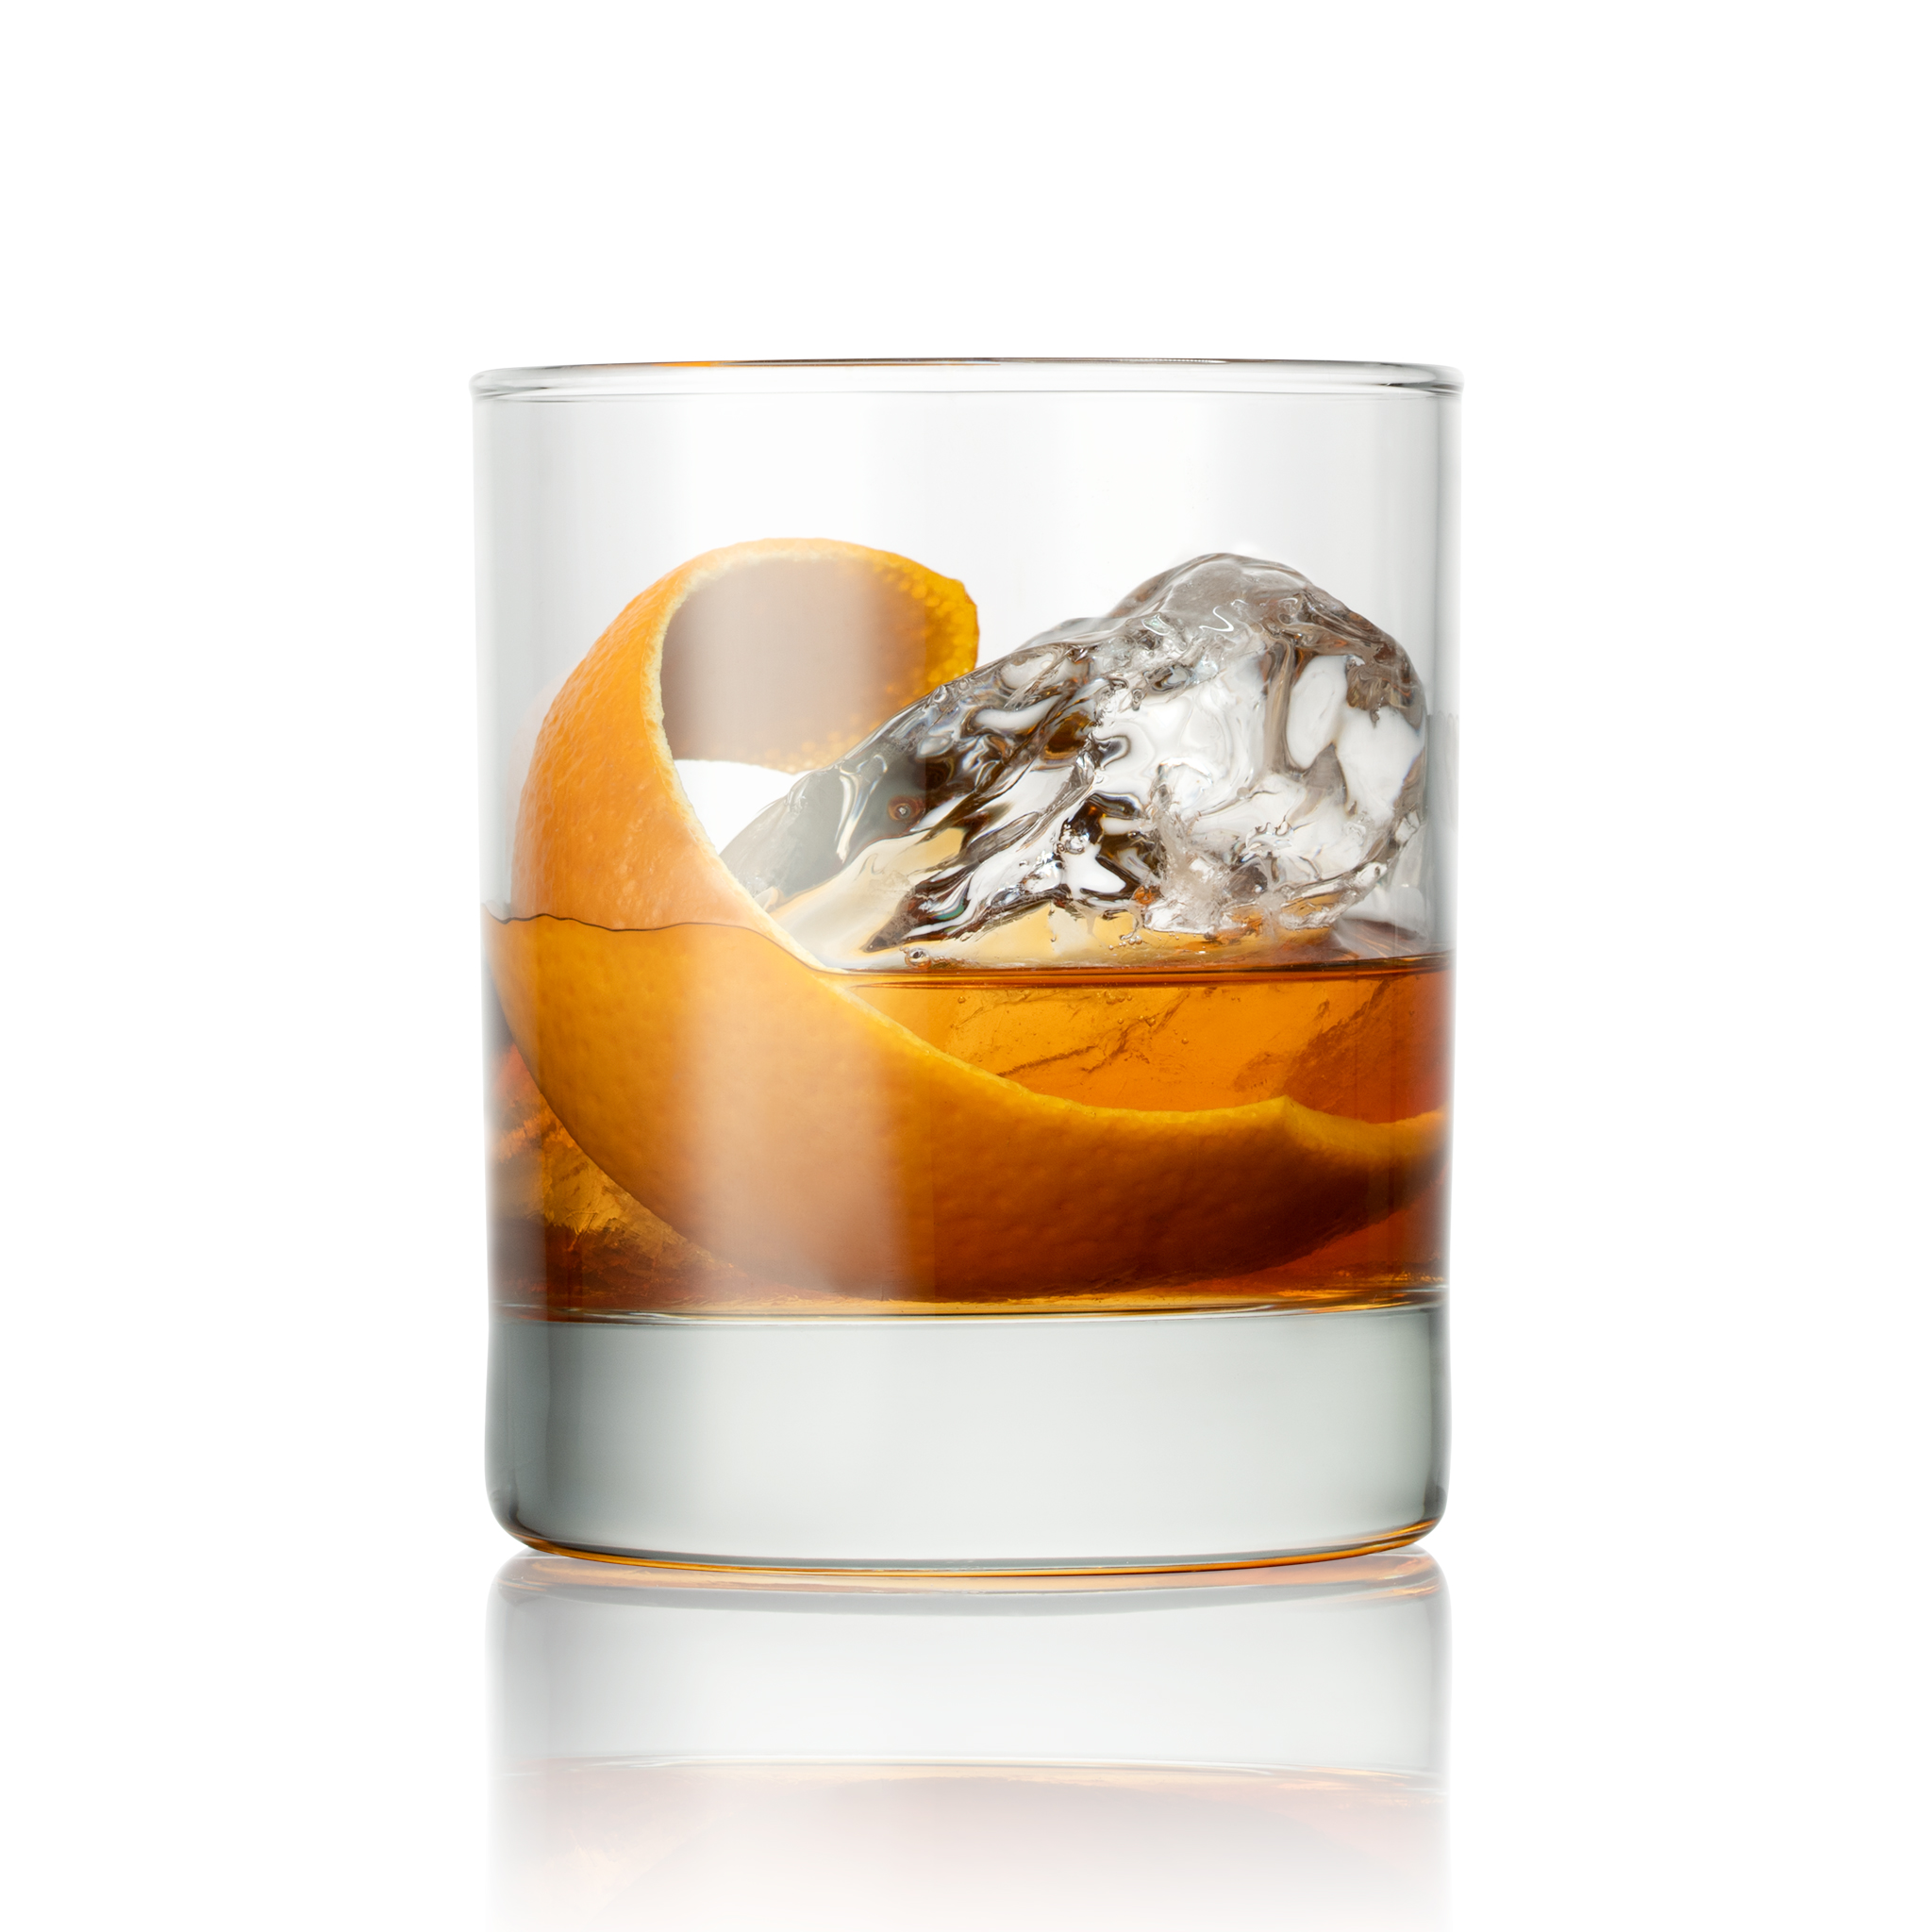 lettstudio_packshot_white_background_chivas_oldfashioned.jpg